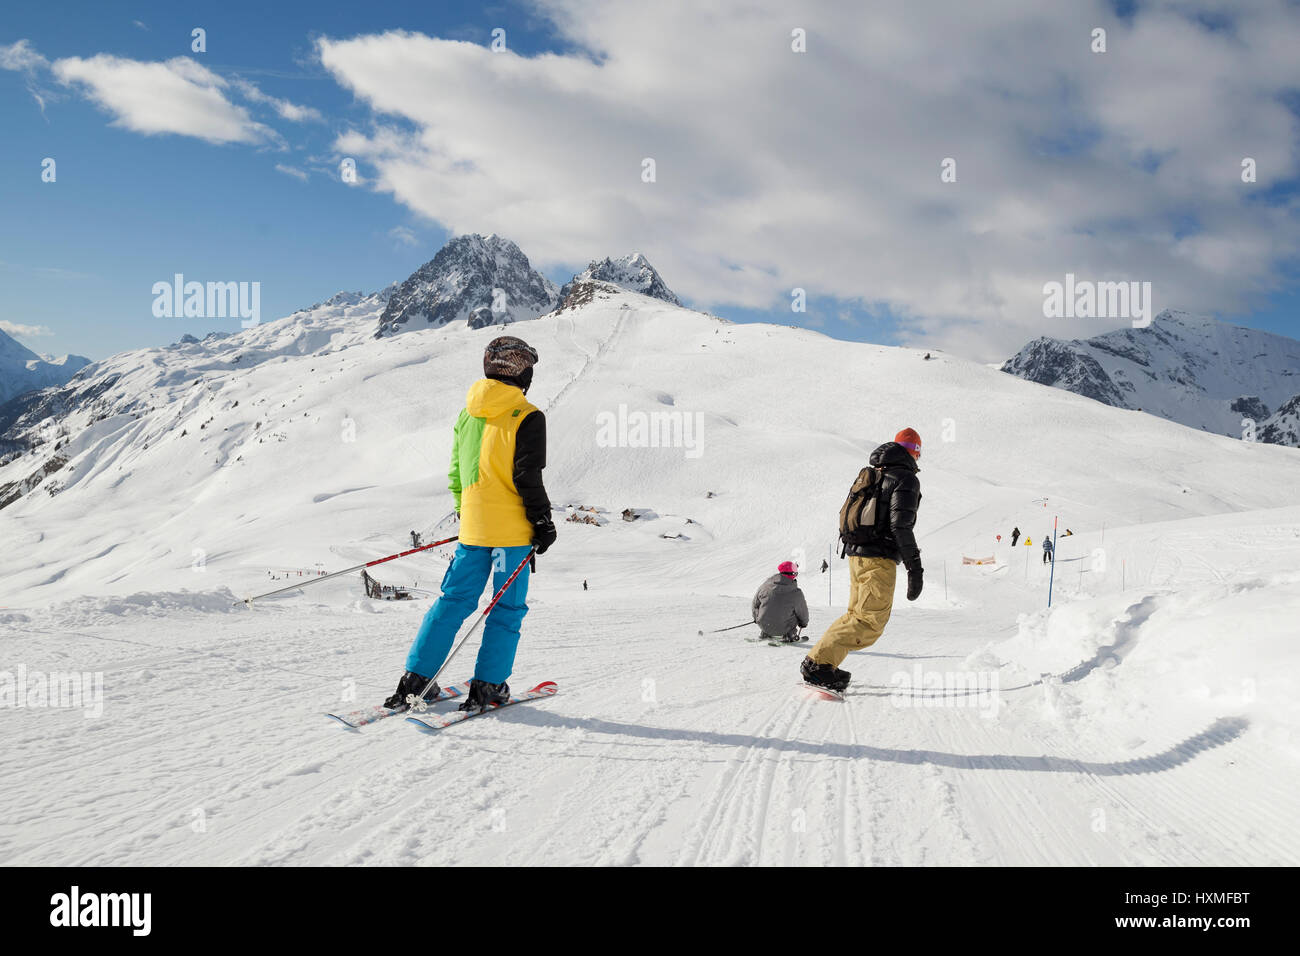 Skiers and snowboarders at Domaine de Balme ski resort in Le Tour outside of Chamonix-Mont-Blanc. - Stock Image